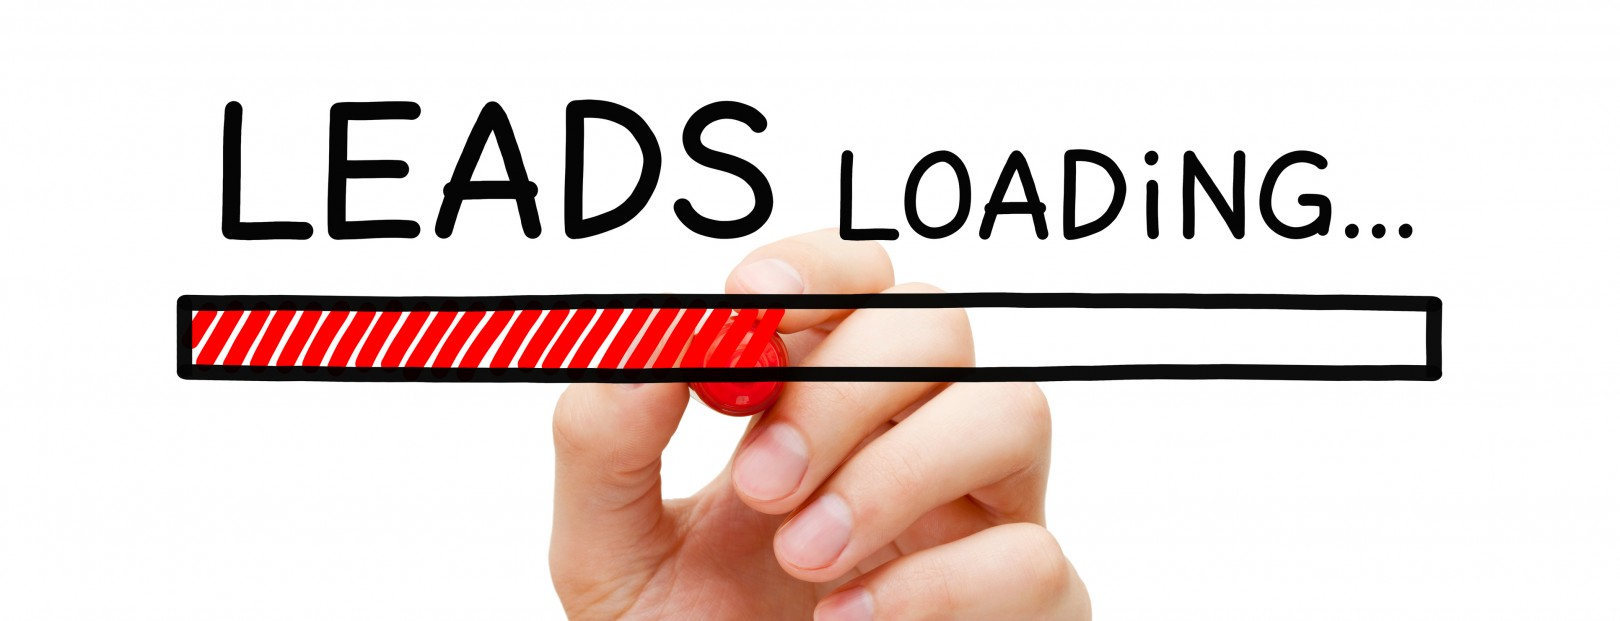 OMG It's AEP! How to turn those leads into sales PDQ!